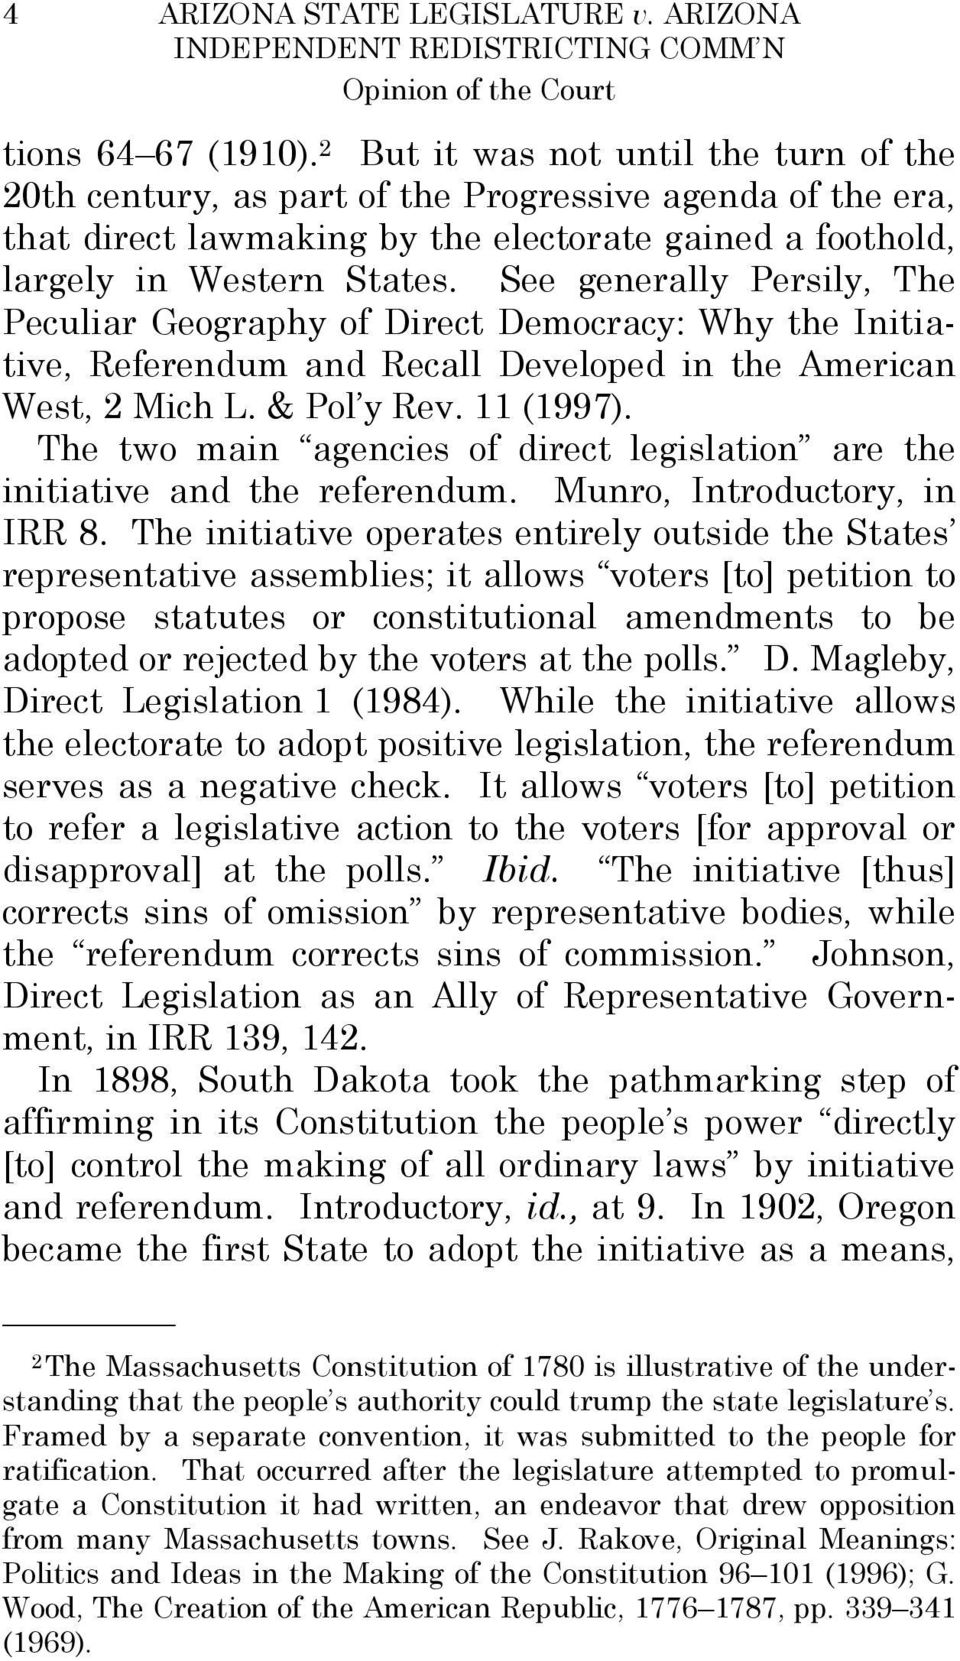 See generally Persily, The Peculiar Geography of Direct Democracy: Why the Initiative, Referendum and Recall Developed in the American West, 2 Mich L. & Pol y Rev. 11 (1997).